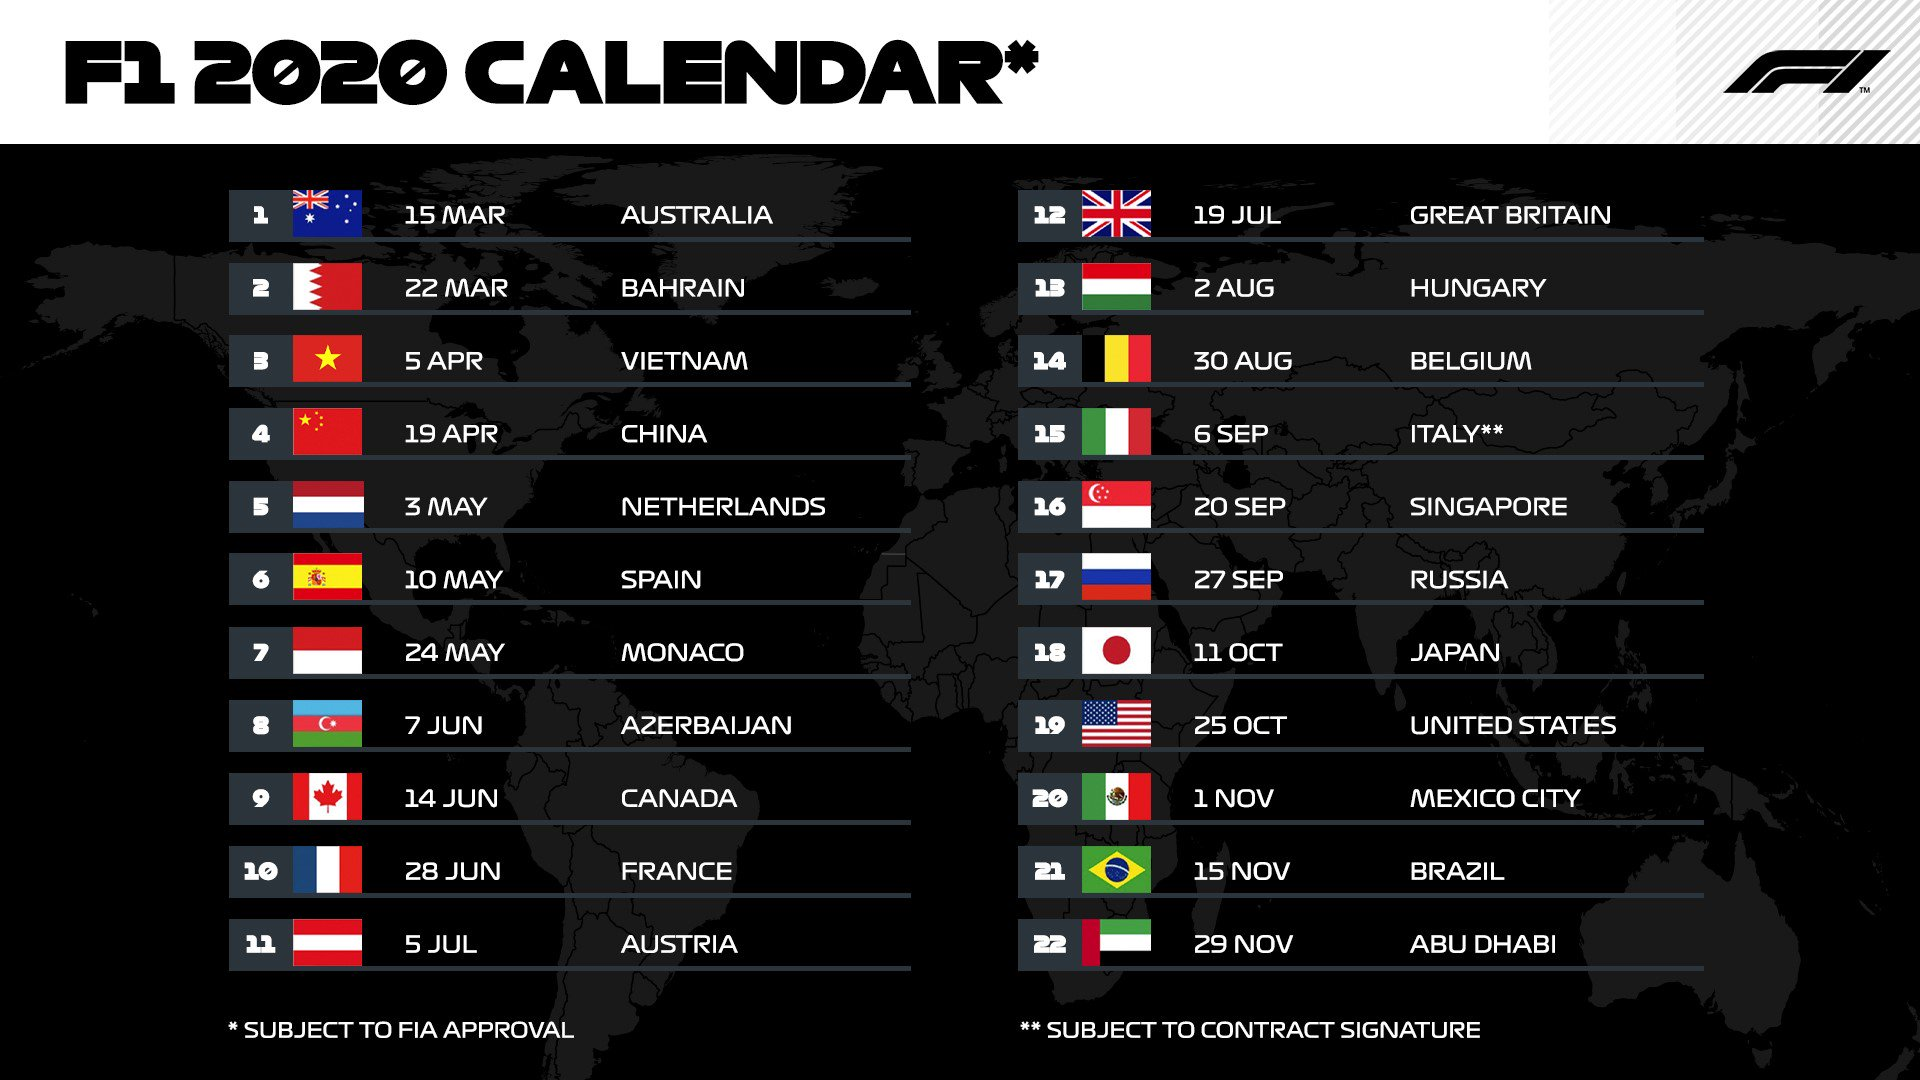 Formula 1 2022 Calendar.Formula 1 On Twitter F1 2020 Calendar 22 Races 7 Back To Back Race Weekends First Ever Race In Vietnam 5 Apr A Return To Zandvoort 3 May Subject To Fia Approval Https T Co Ivutnfnoyd